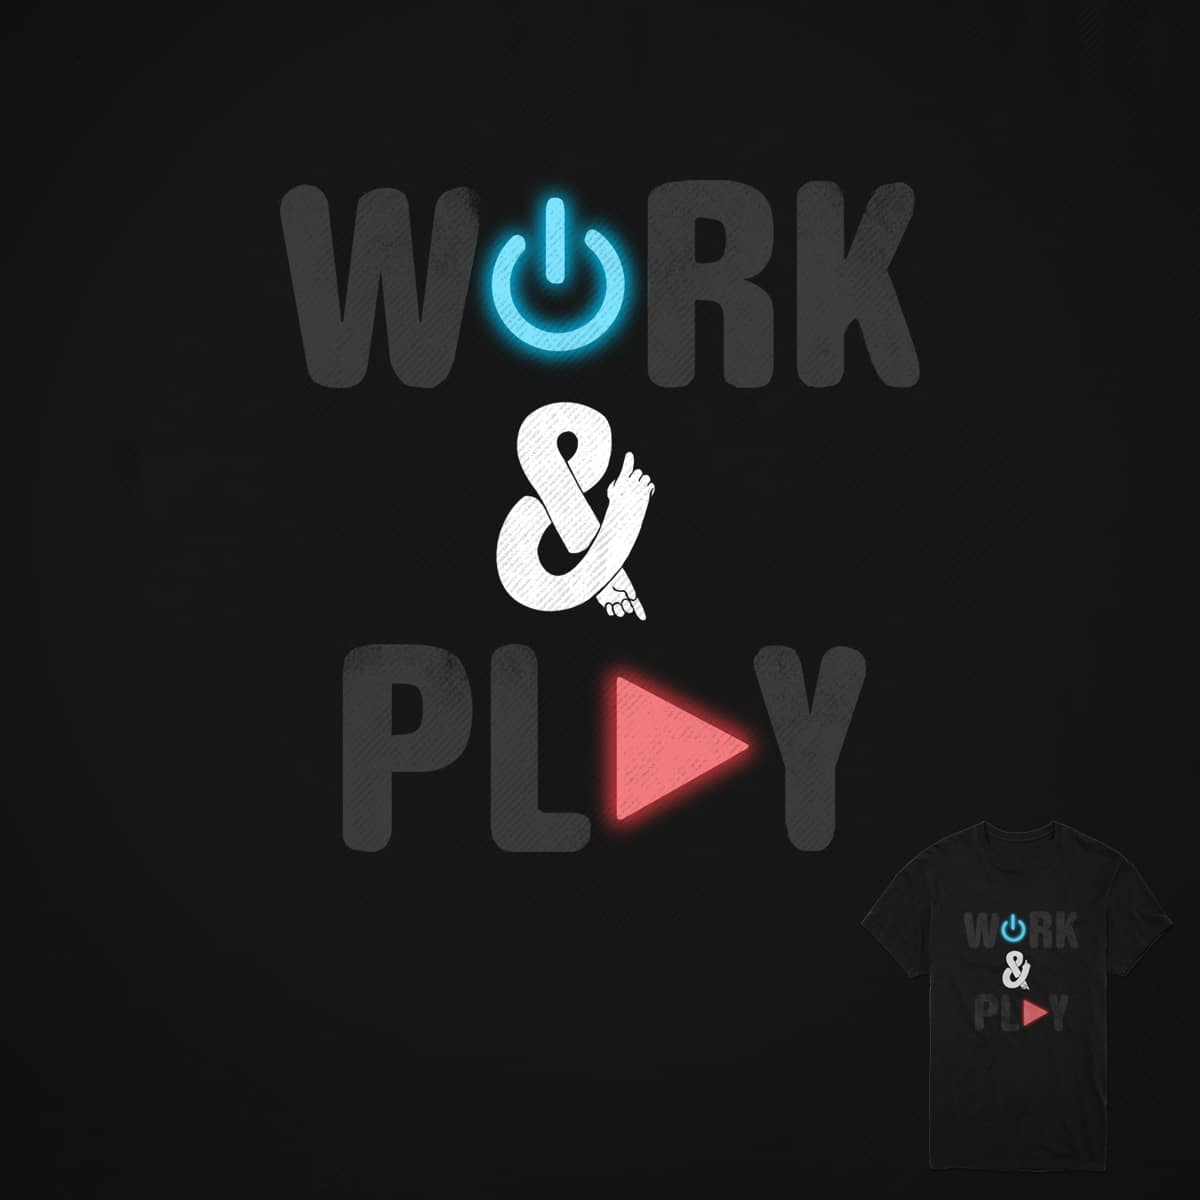 Work and Play by digitalcarbine on Threadless